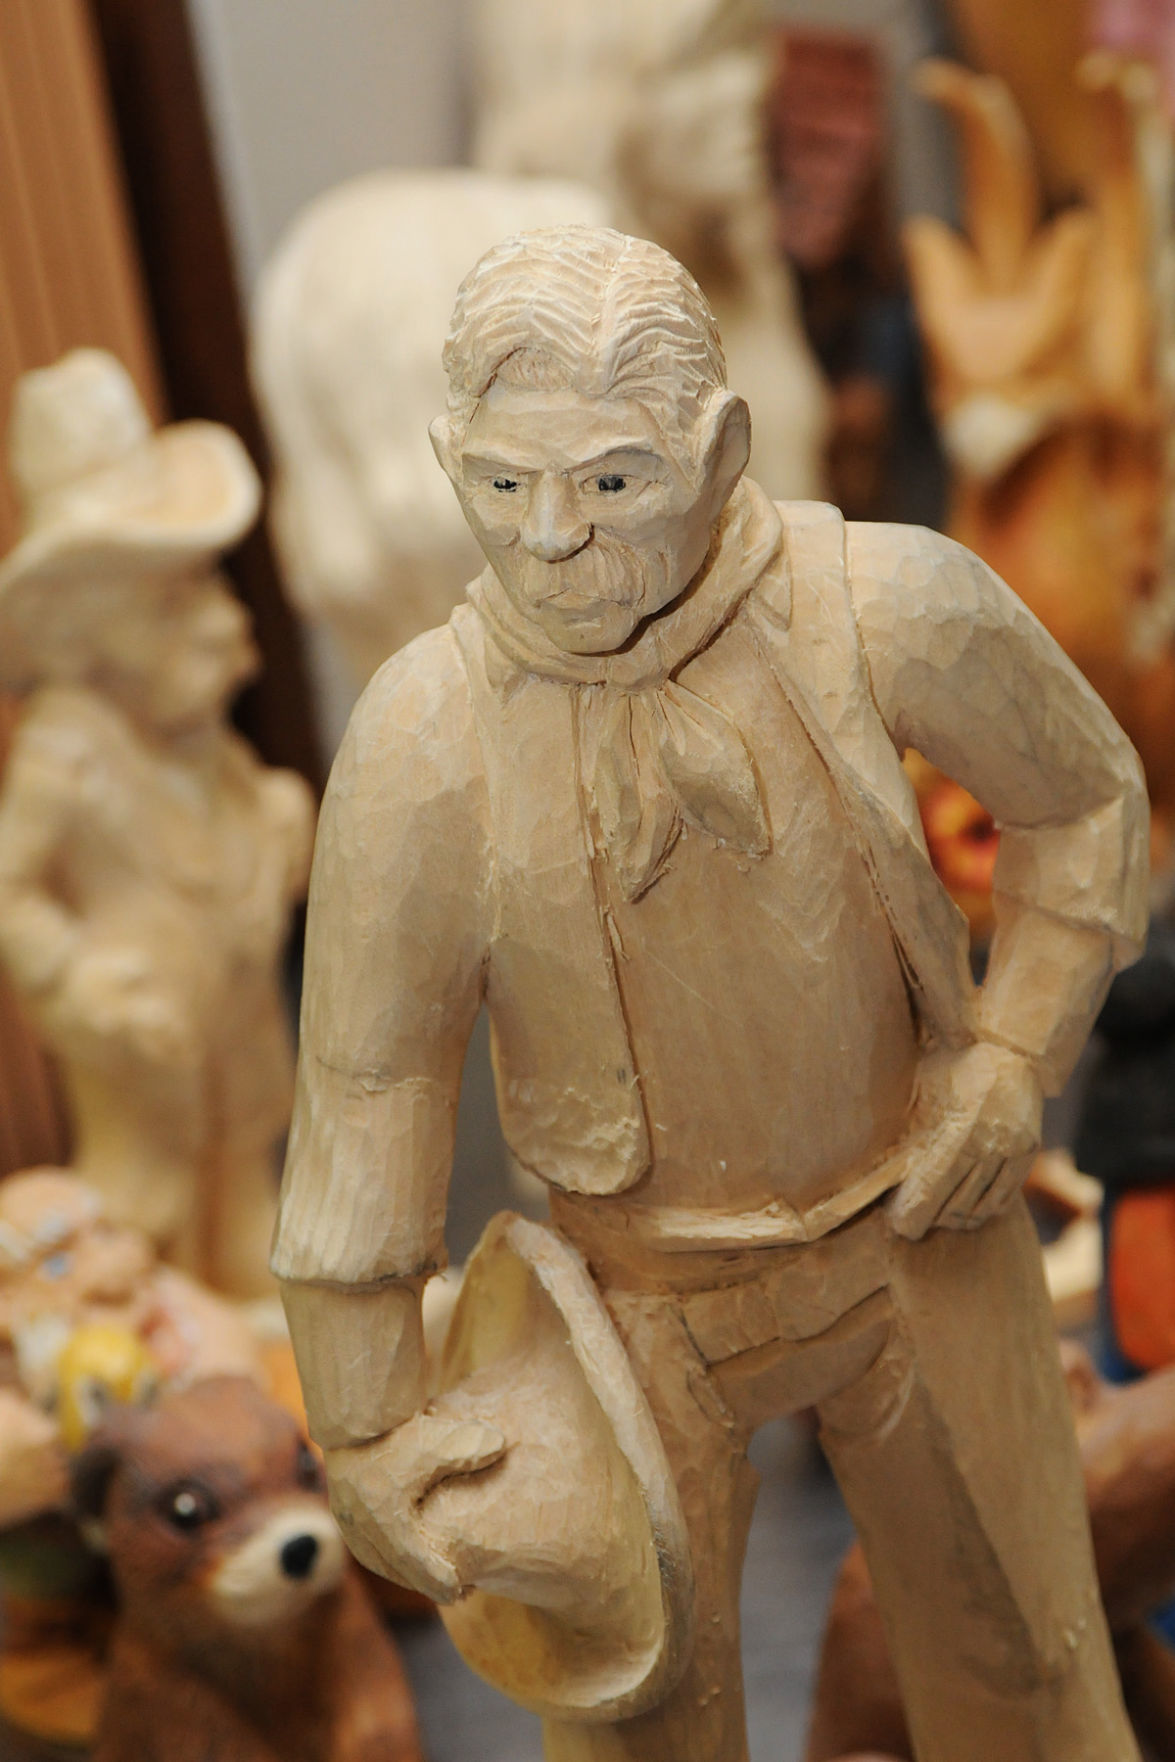 Marinduque awaits you my collection of wood carvings and crafts